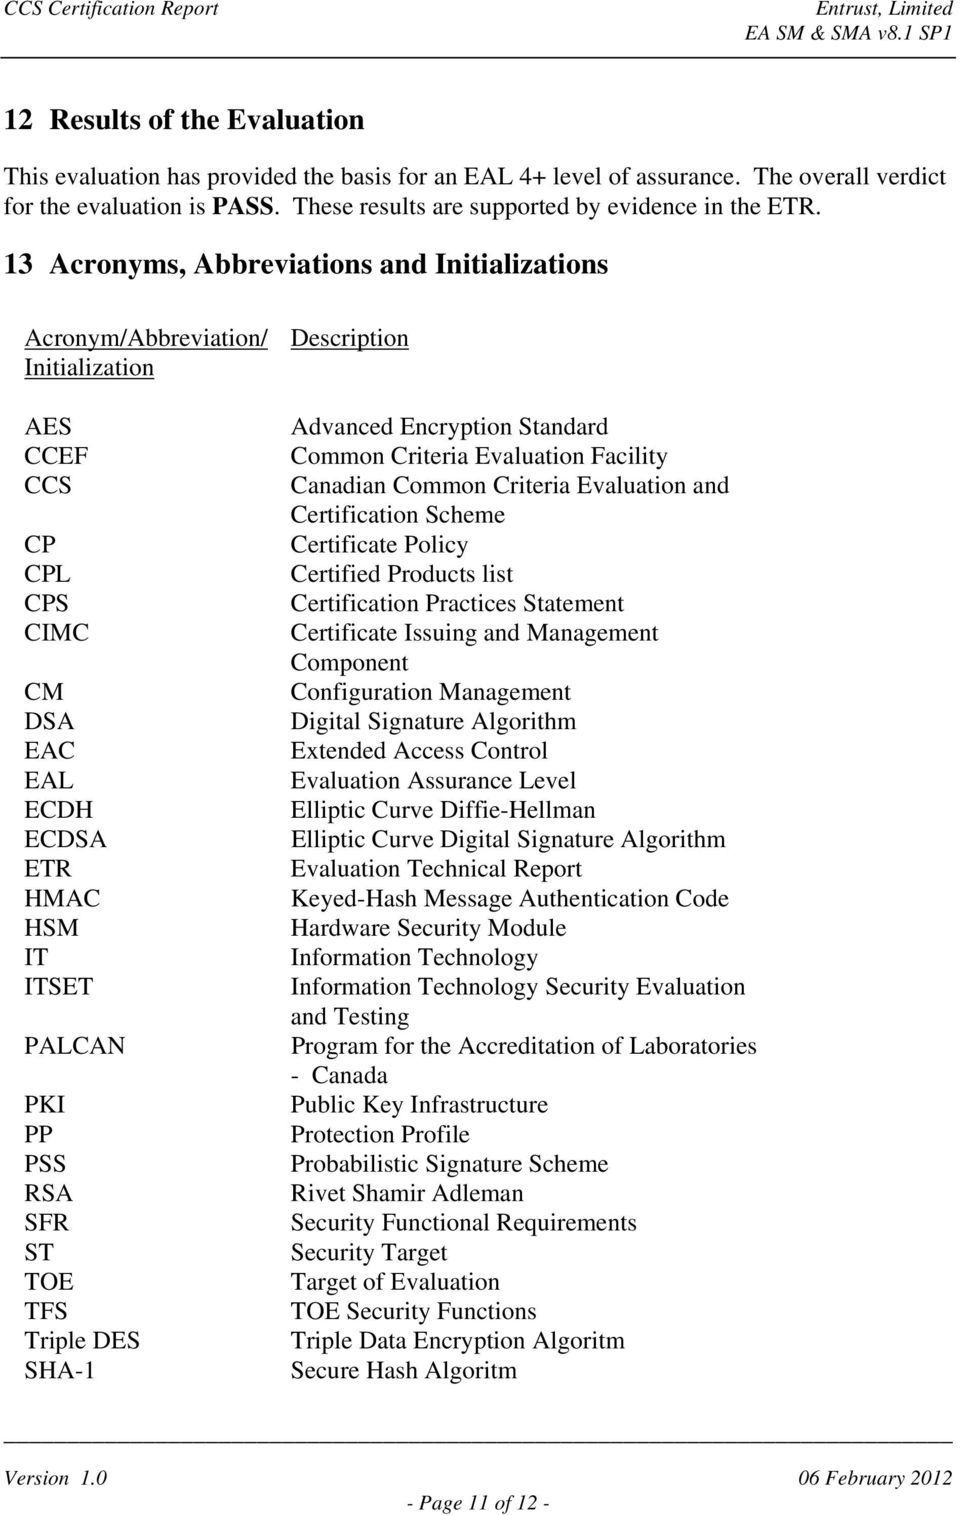 13 Acronyms, Abbreviations and Initializations Acronym/Abbreviation/ Initialization AES CCEF CCS CP CPL CPS CIMC CM DSA EAC EAL ECDH ECDSA ETR HMAC HSM IT ITSET PALCAN PKI PP PSS RSA SFR ST TOE TFS